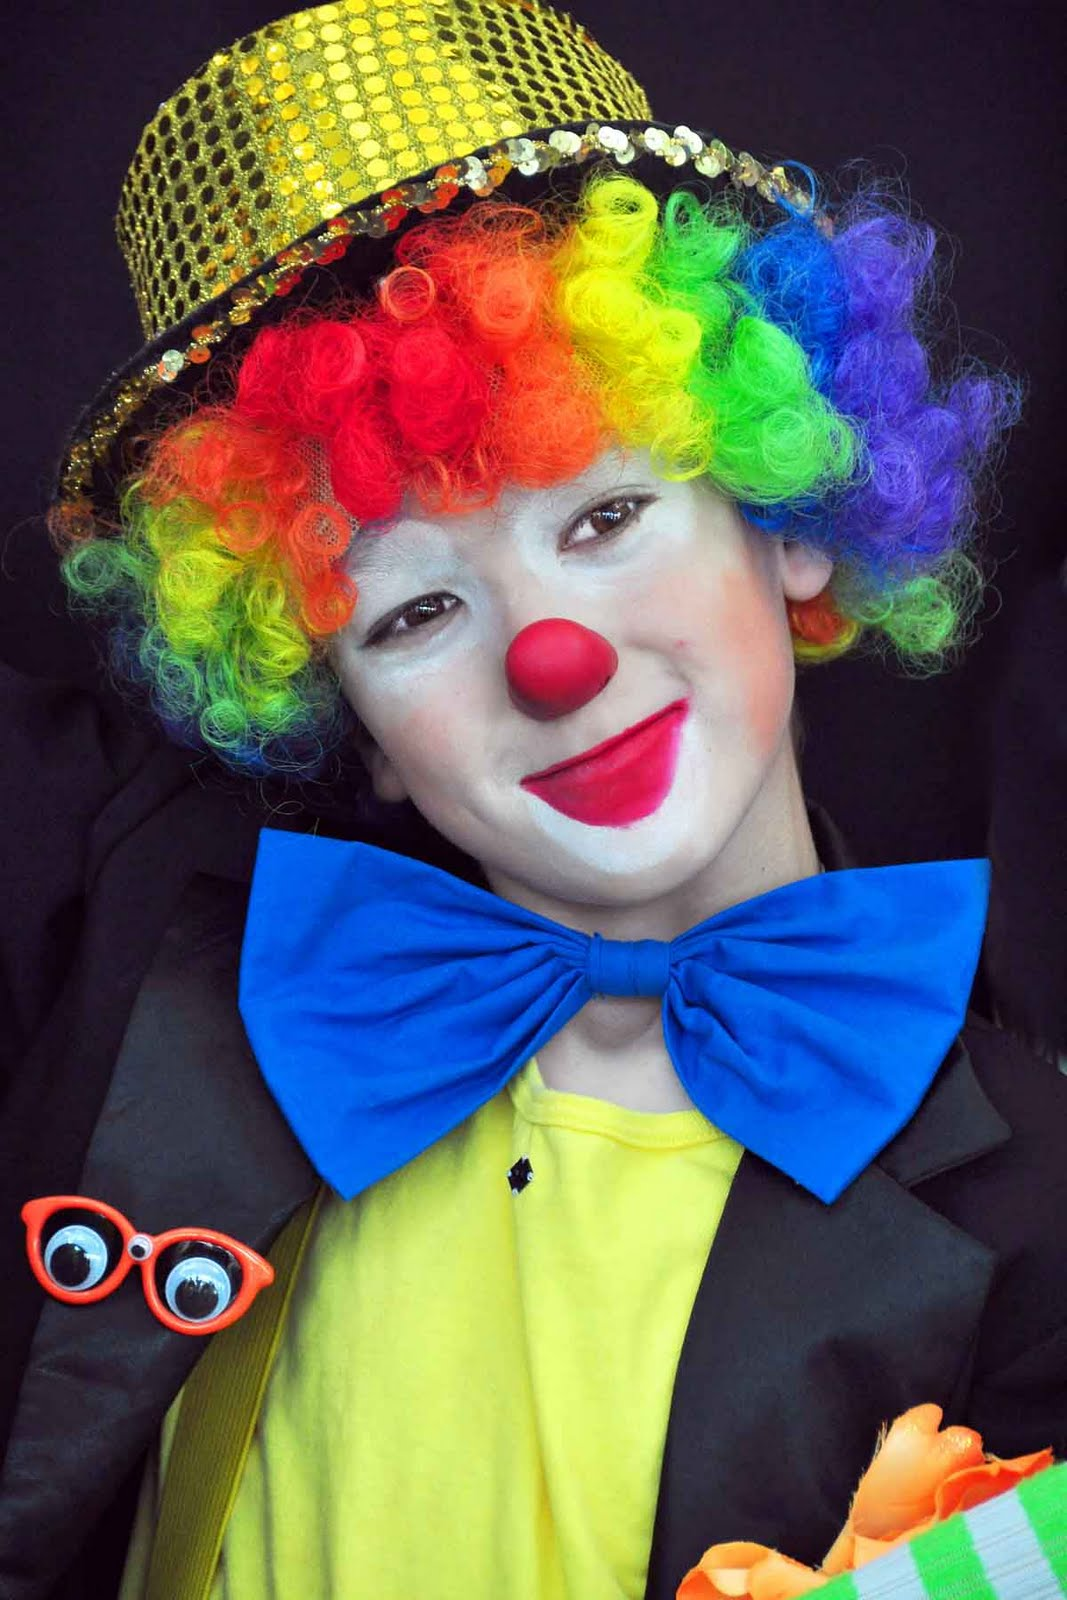 Allison Orthner: Bring in the Clowns!!!